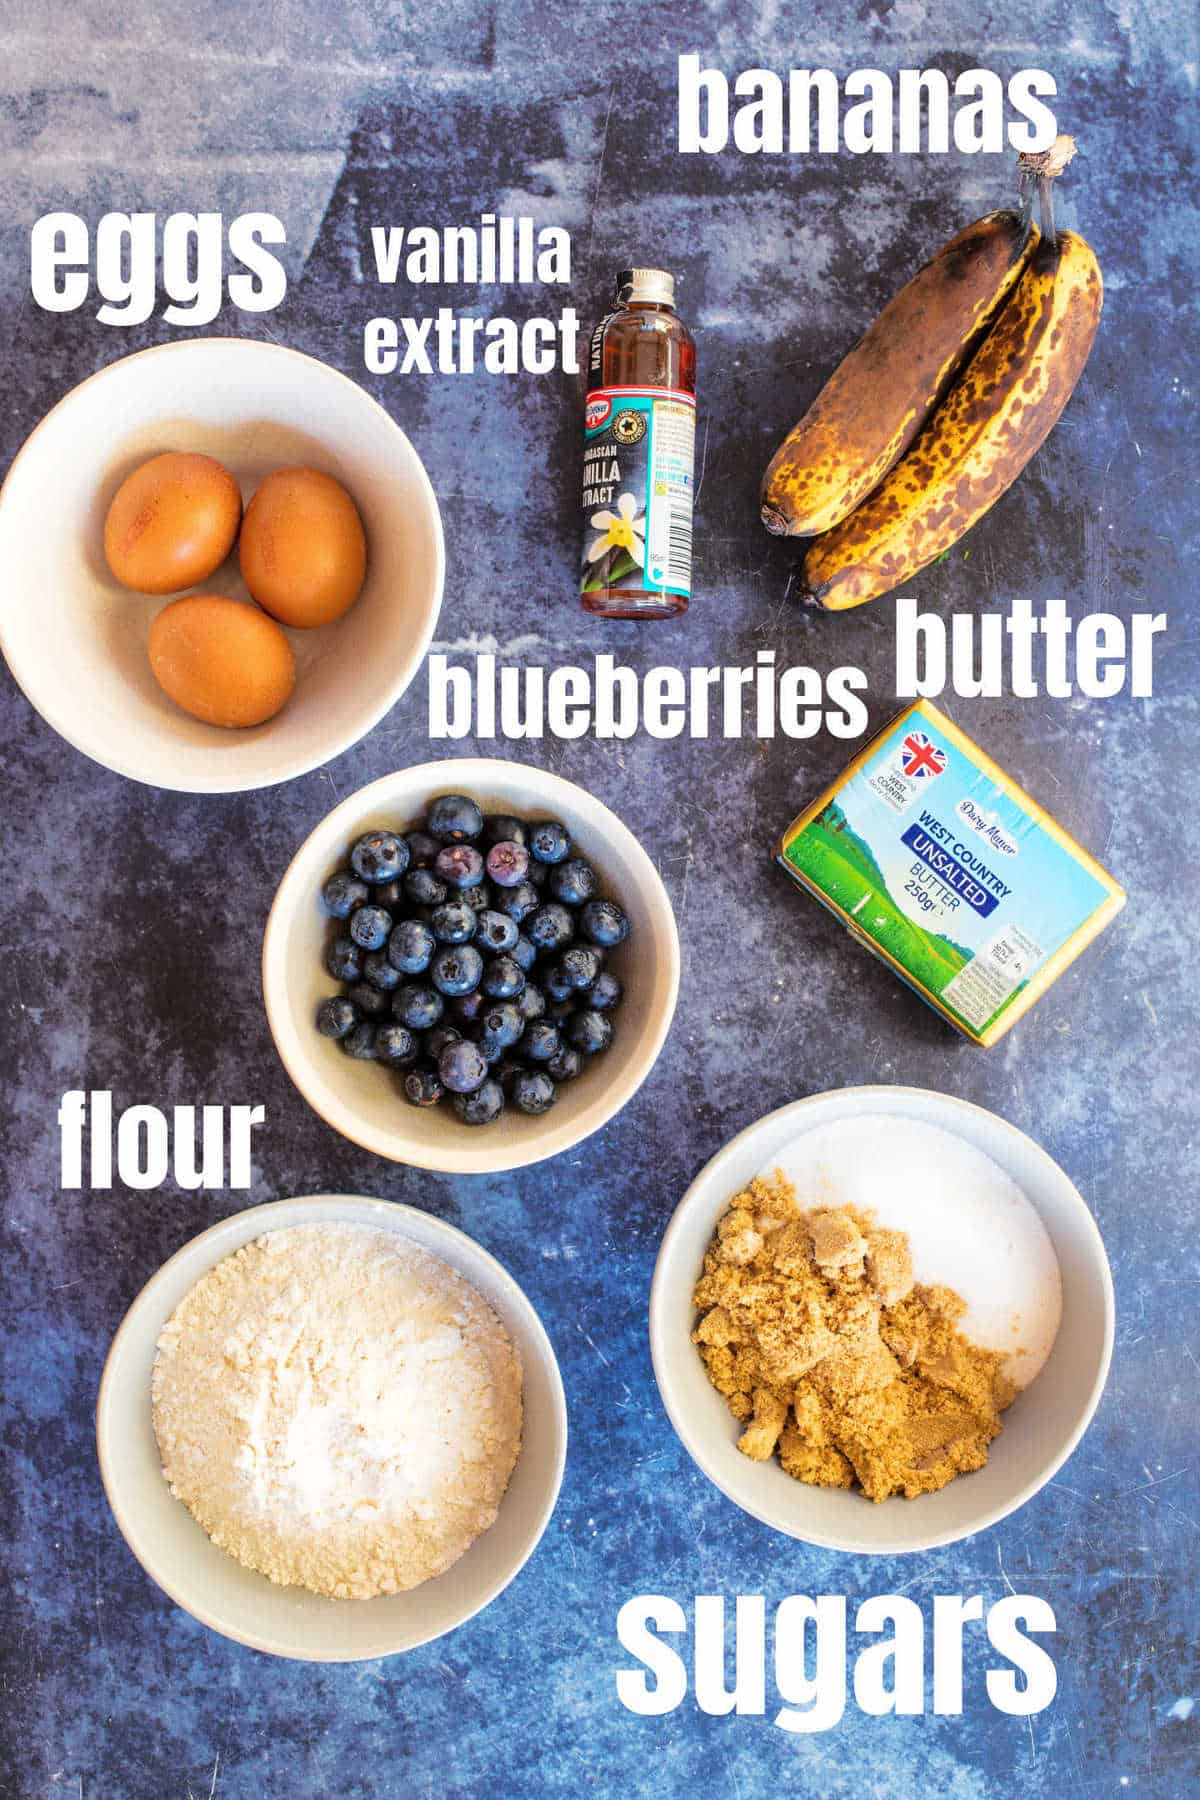 Ingredients for blueberry banana bread.